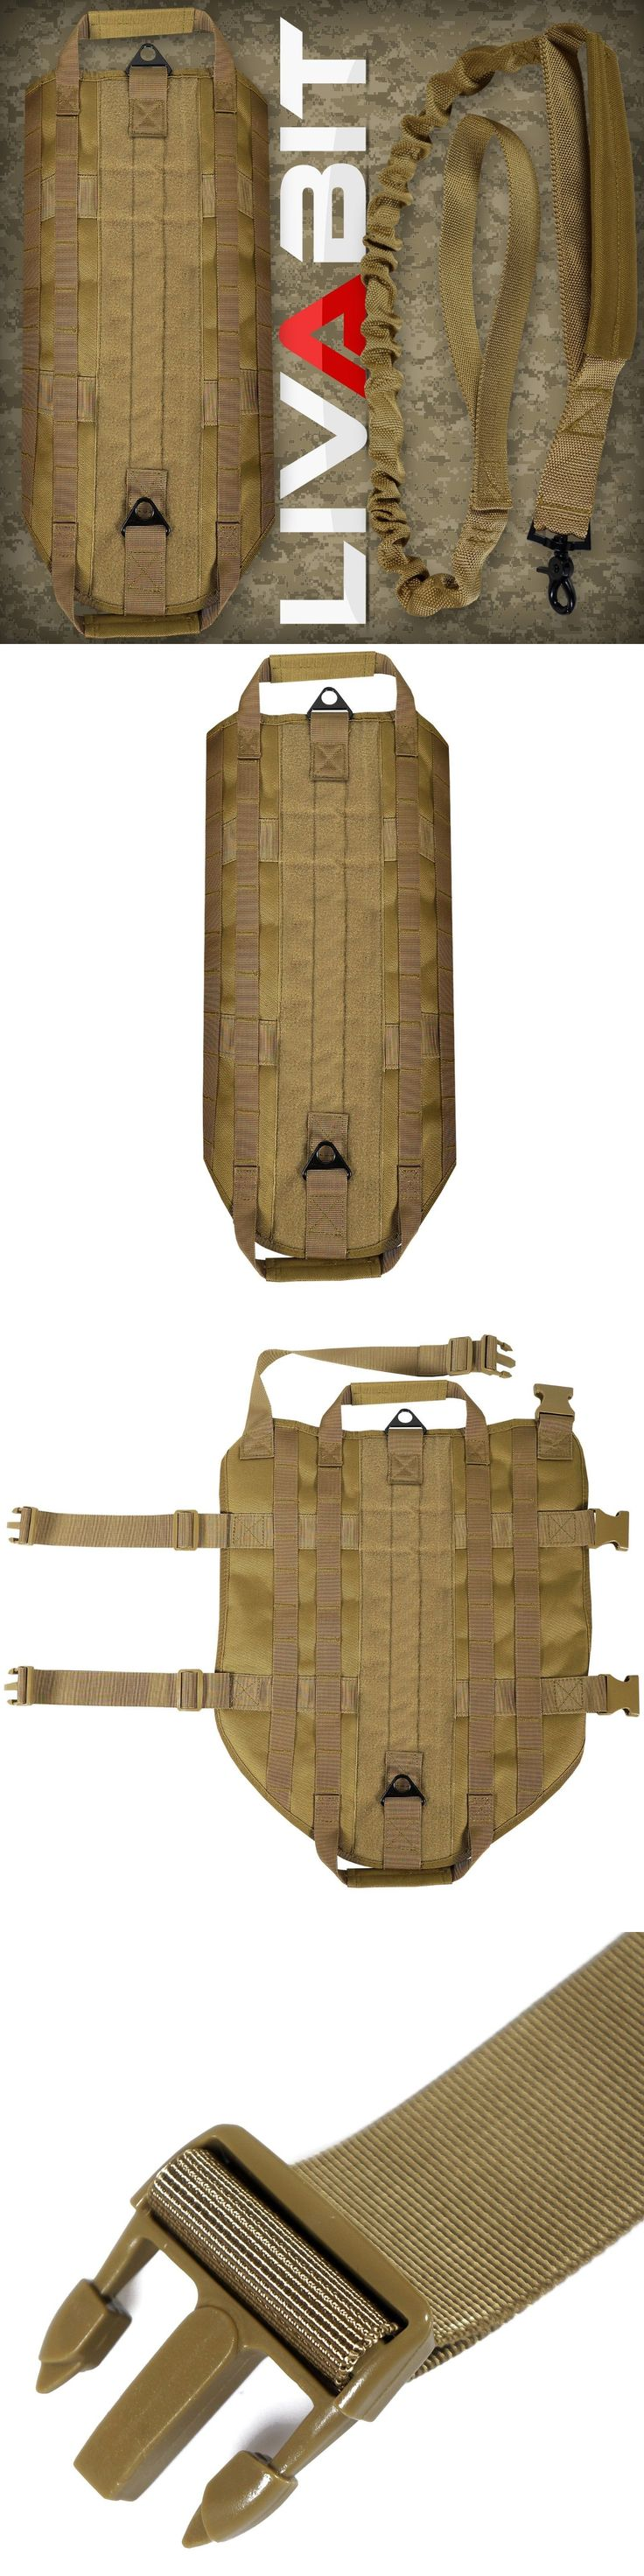 Harnesses 66783: Livabit Tan Police K9 Dog Tactical Molle Vest Harness + Leash X-Large -> BUY IT NOW ONLY: $43 on eBay!